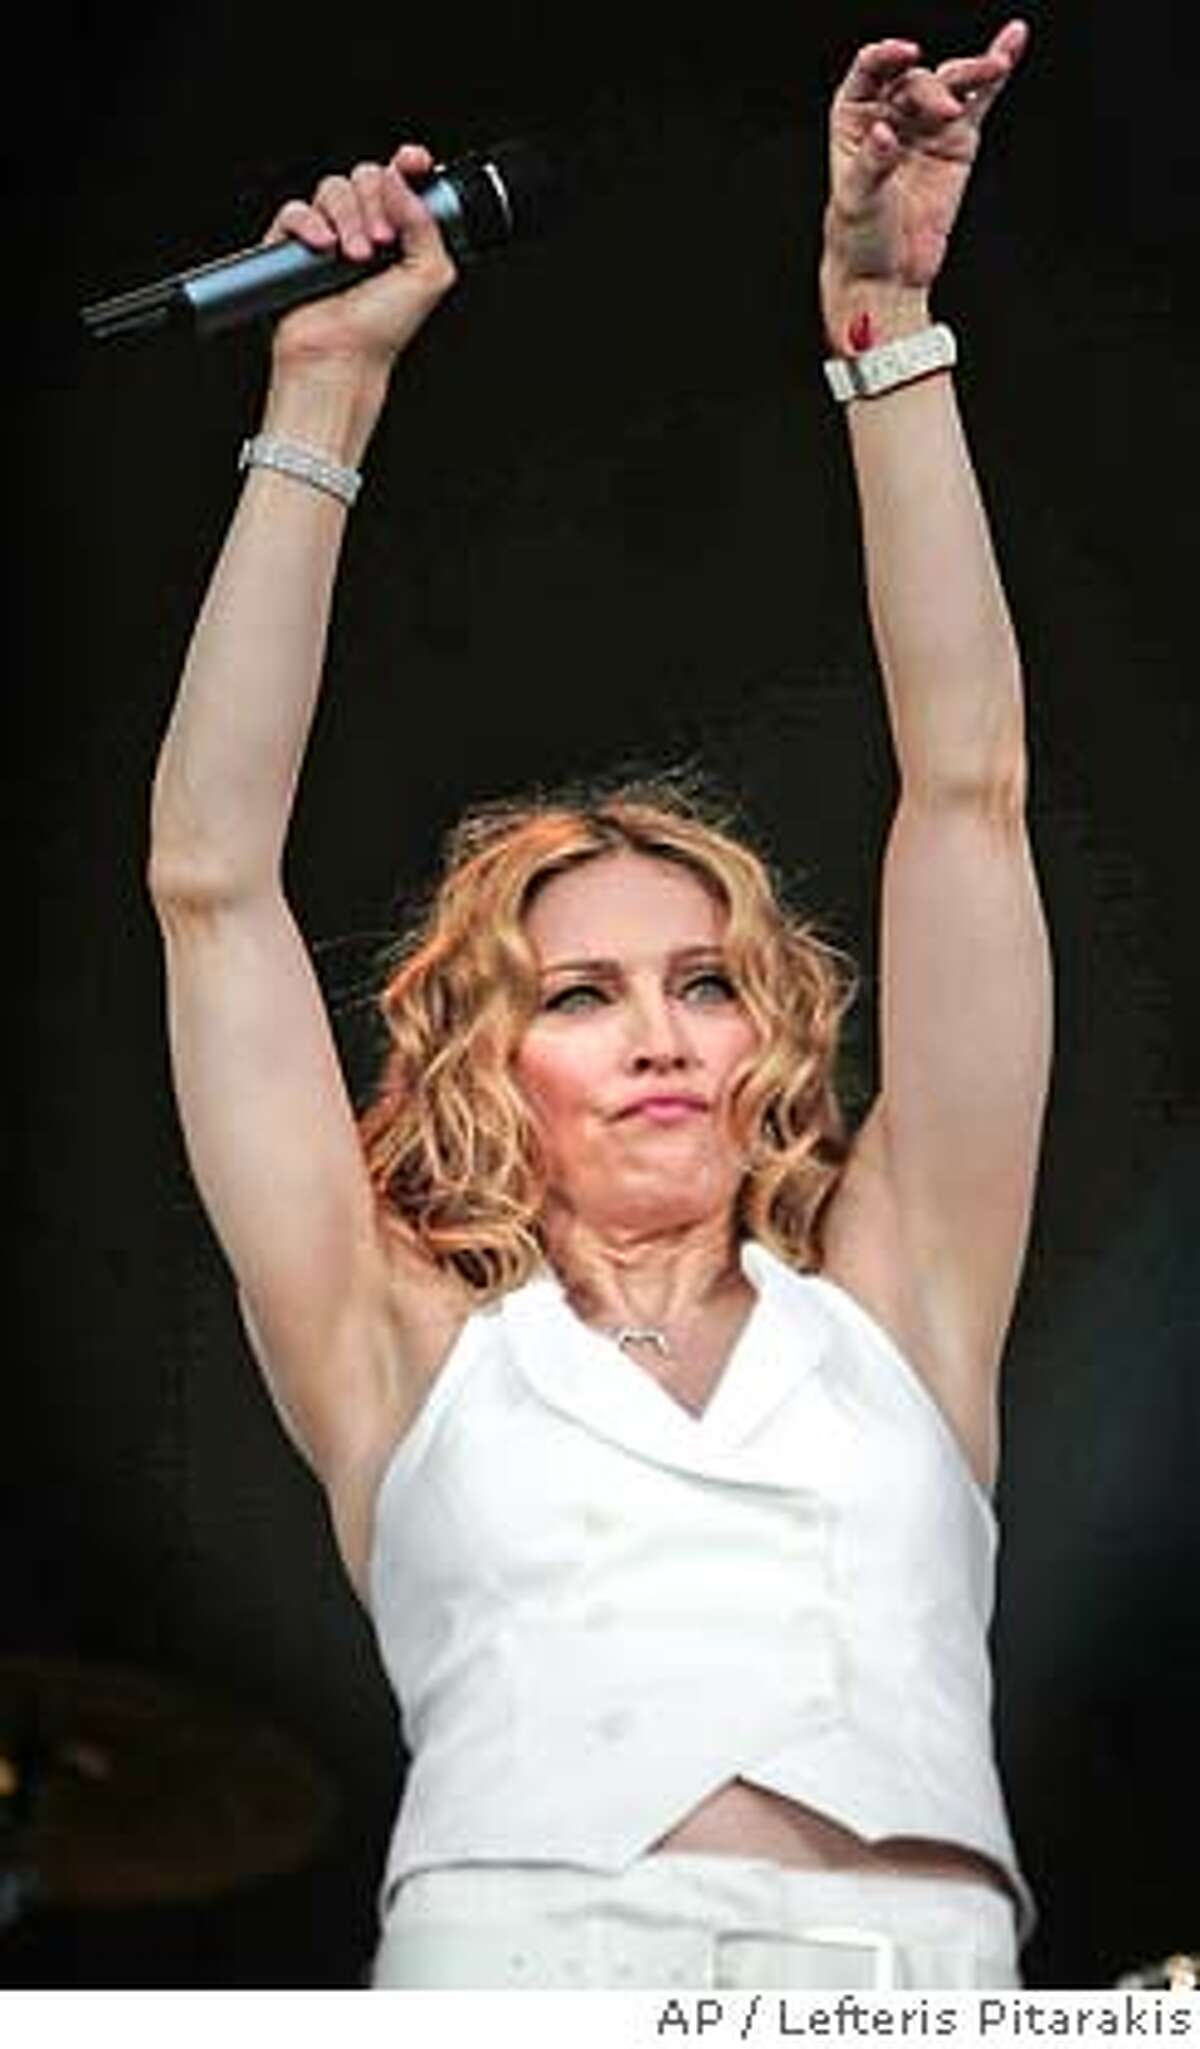 Madonna, performs at the Live 8 concert in Hyde Park, London, Saturday July 2, 2005. The concert is part of a series of free concerts being held around the world designed to press leaders of the rich G8 countries to help impoverished African nations. (AP Photo/Lefteris Pitarakis)